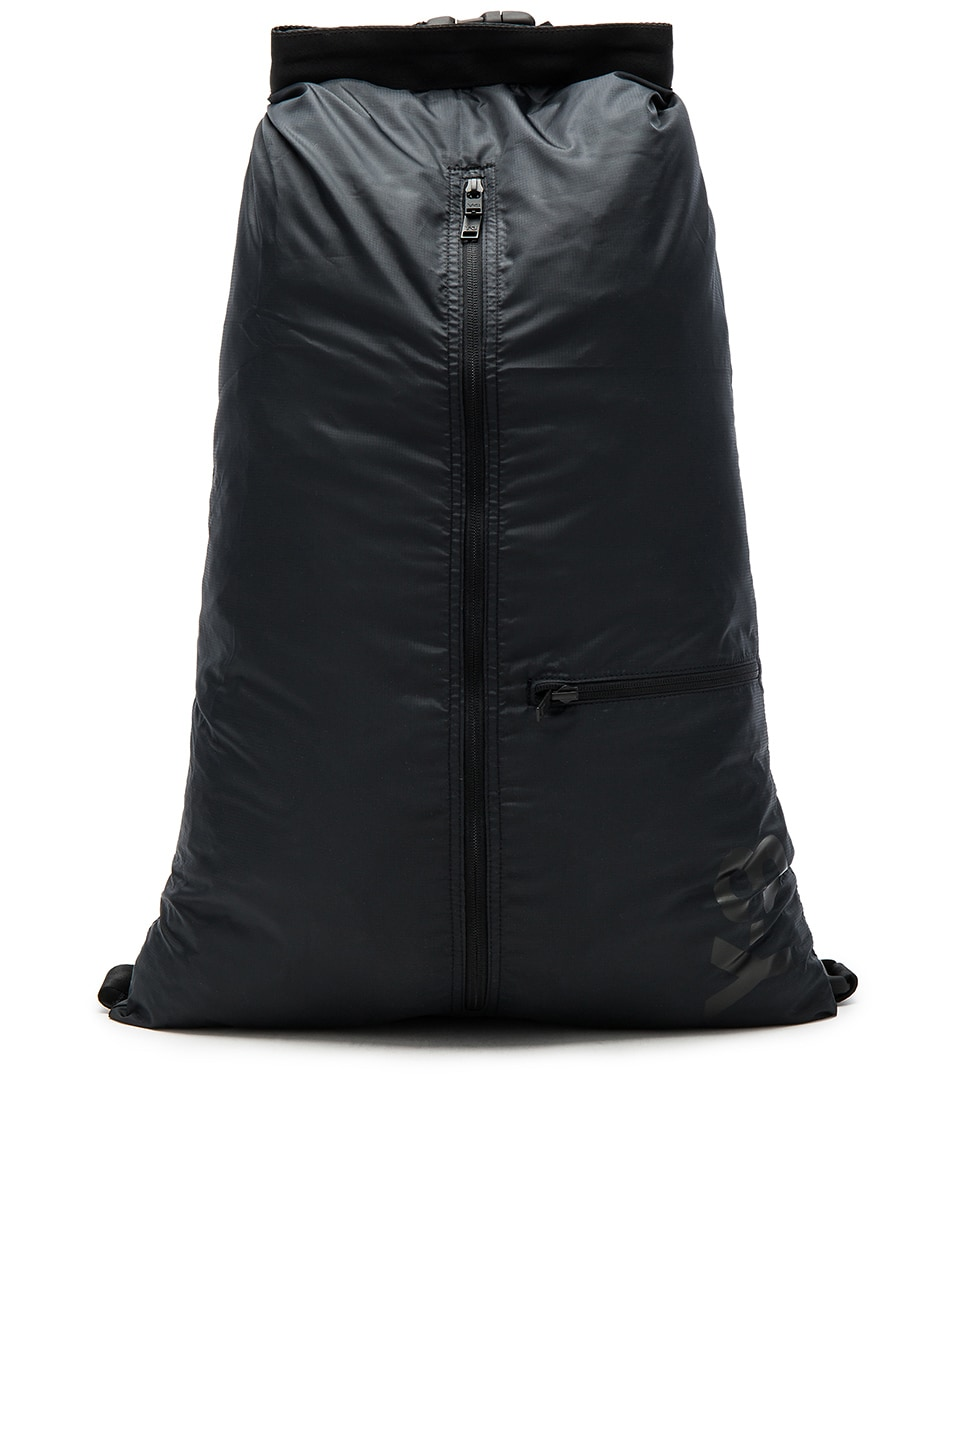 Photo of Packable Backpack by Y-3 Yohji Yamamoto men clothes